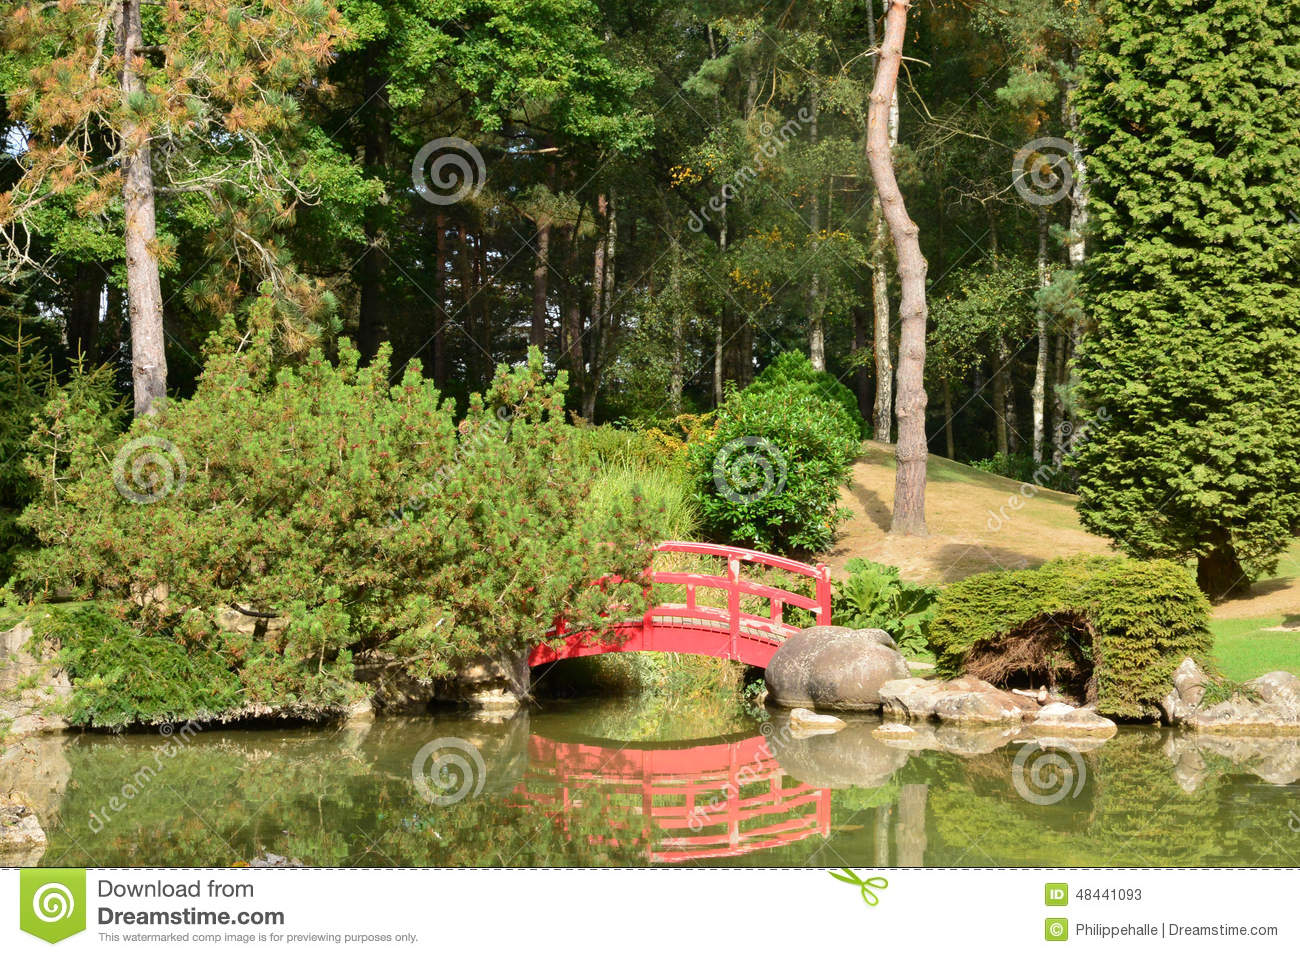 Frances Le Jardin Japonais Pittoresque D 39 Aincourt Photo